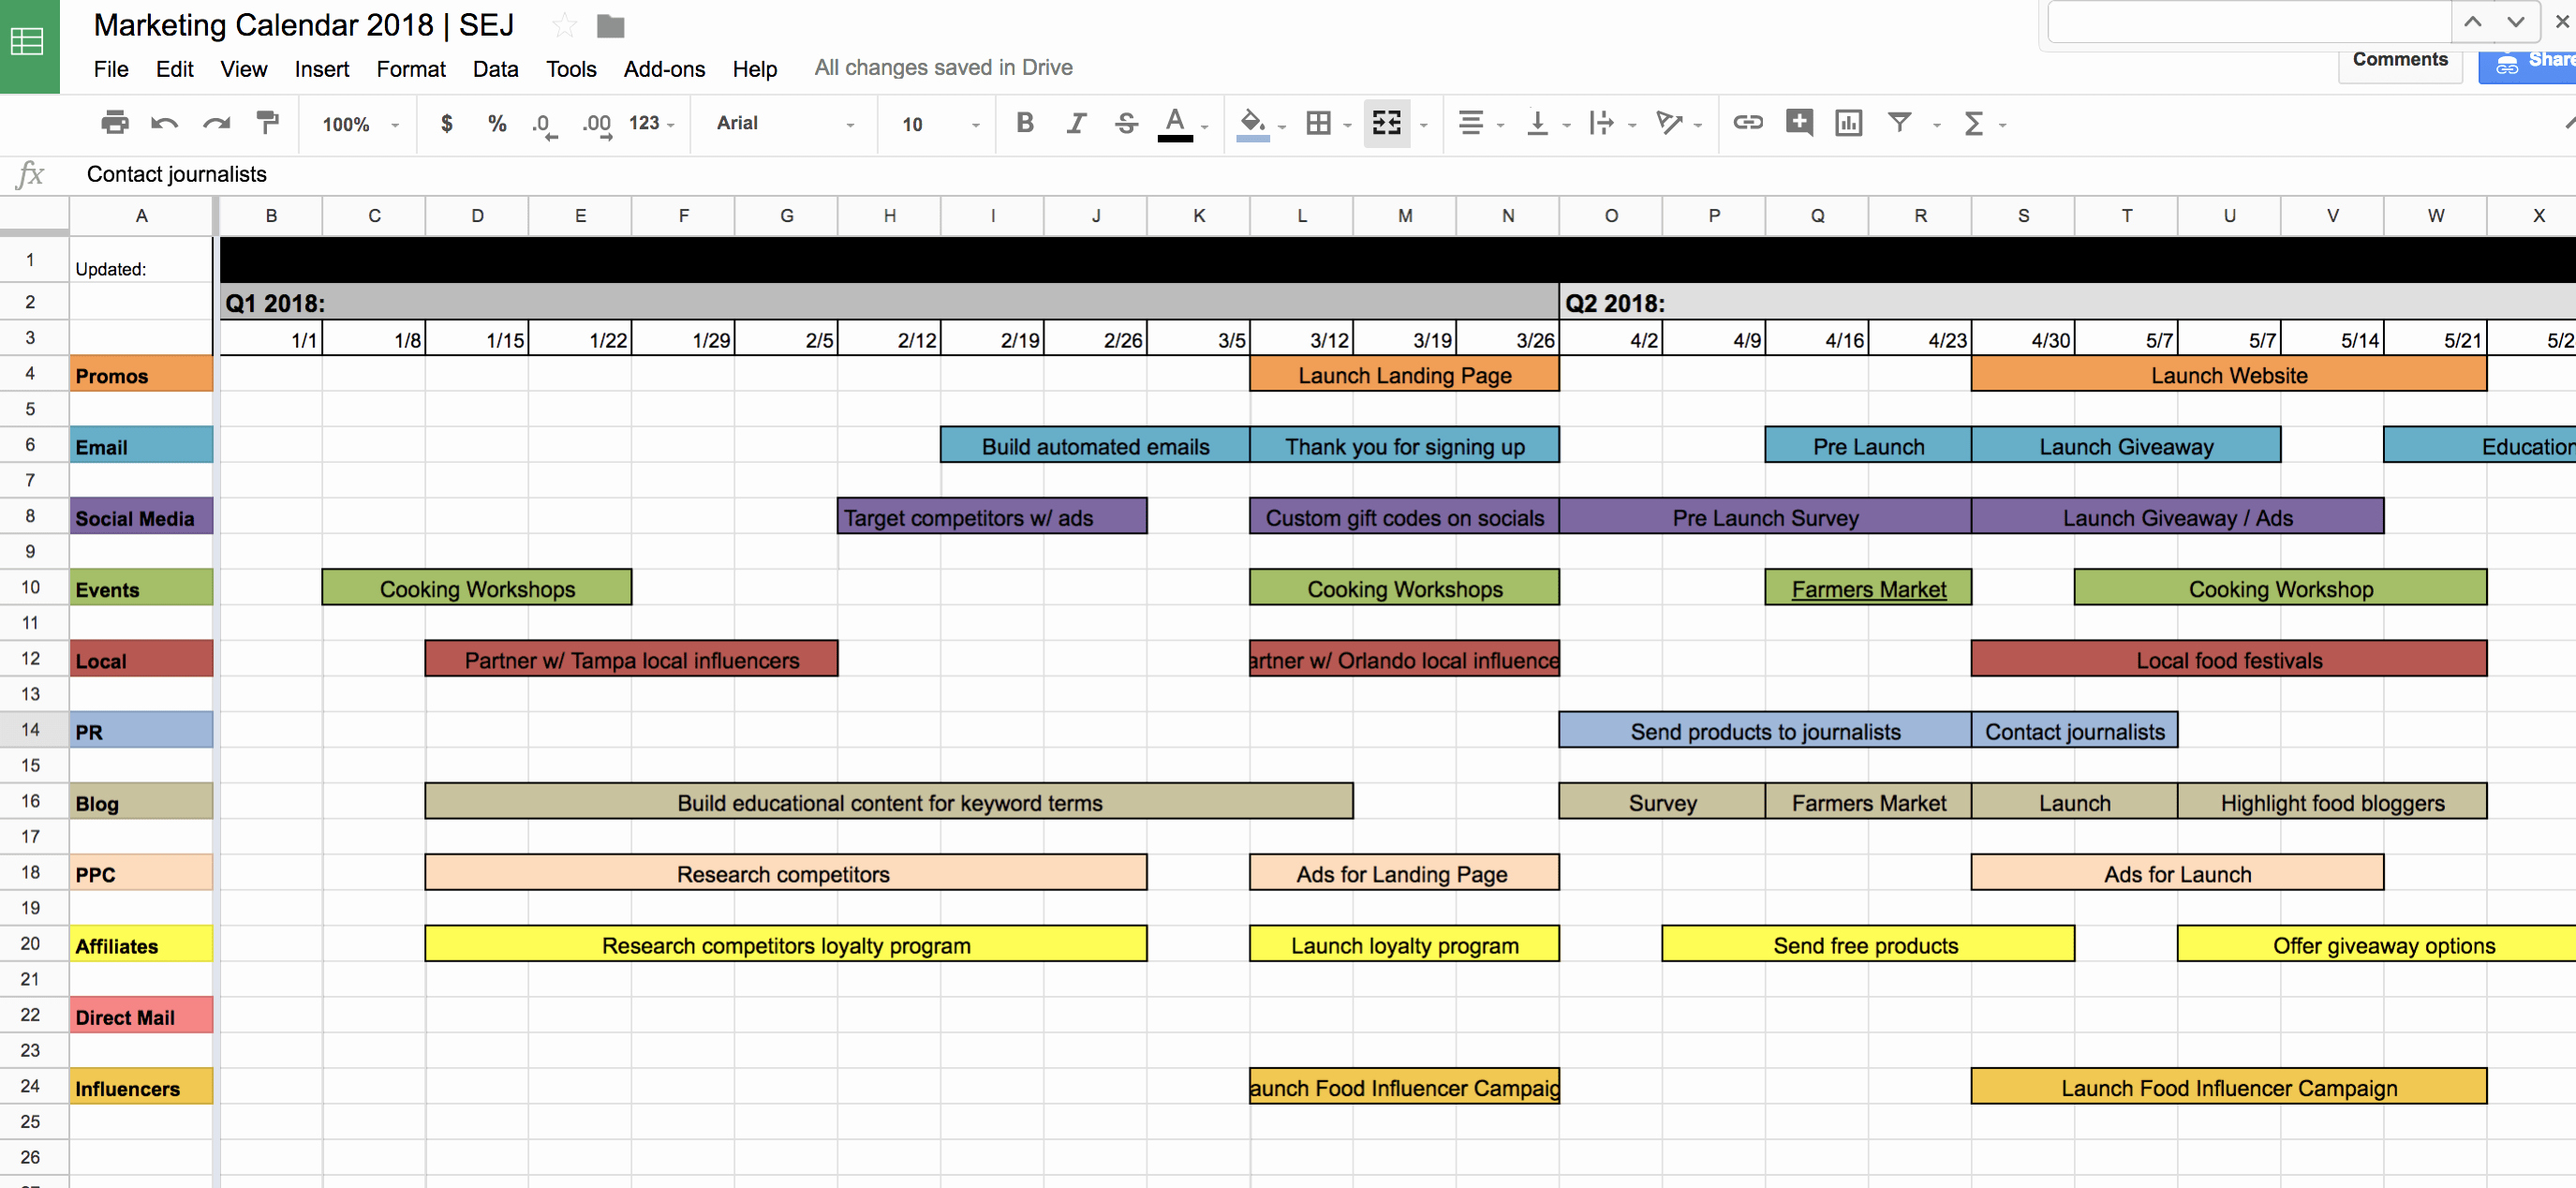 Elementary School Master Schedule Template Best Of You Need This 2018 Marketing Calendar & Free Template